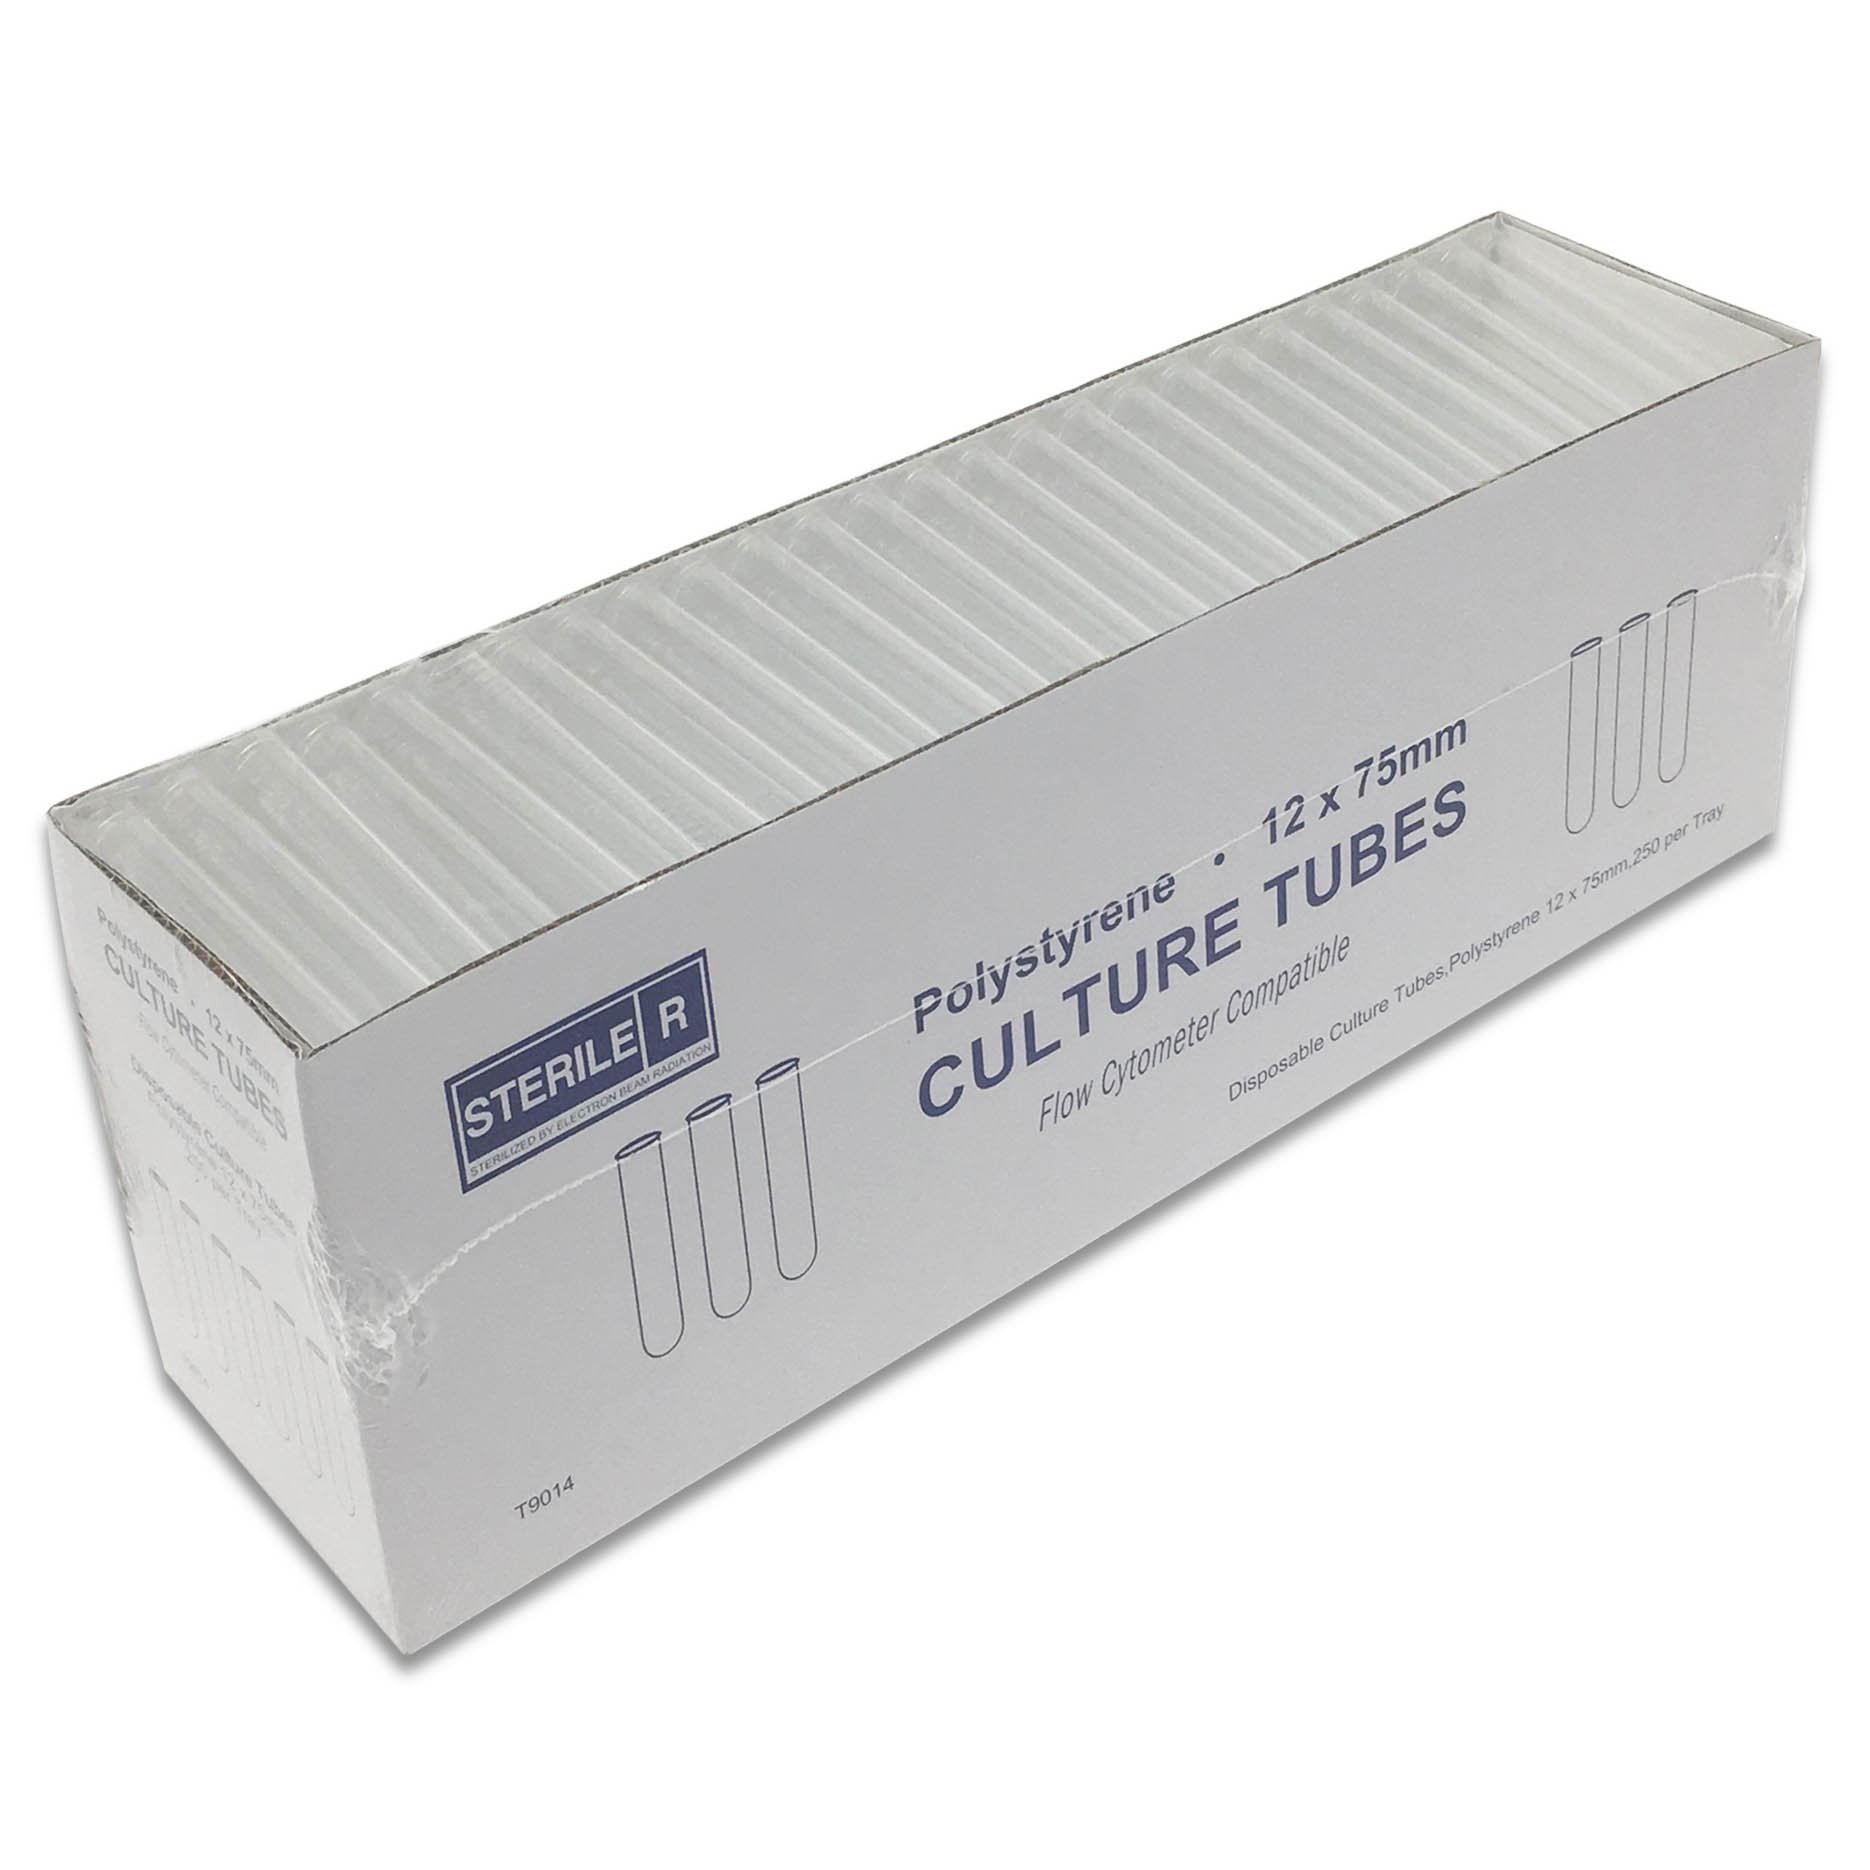 12mm x 75mm FlowTubes without Cap - Sterile - Pack 1000 (4 Tray Boxes of 250/Box)